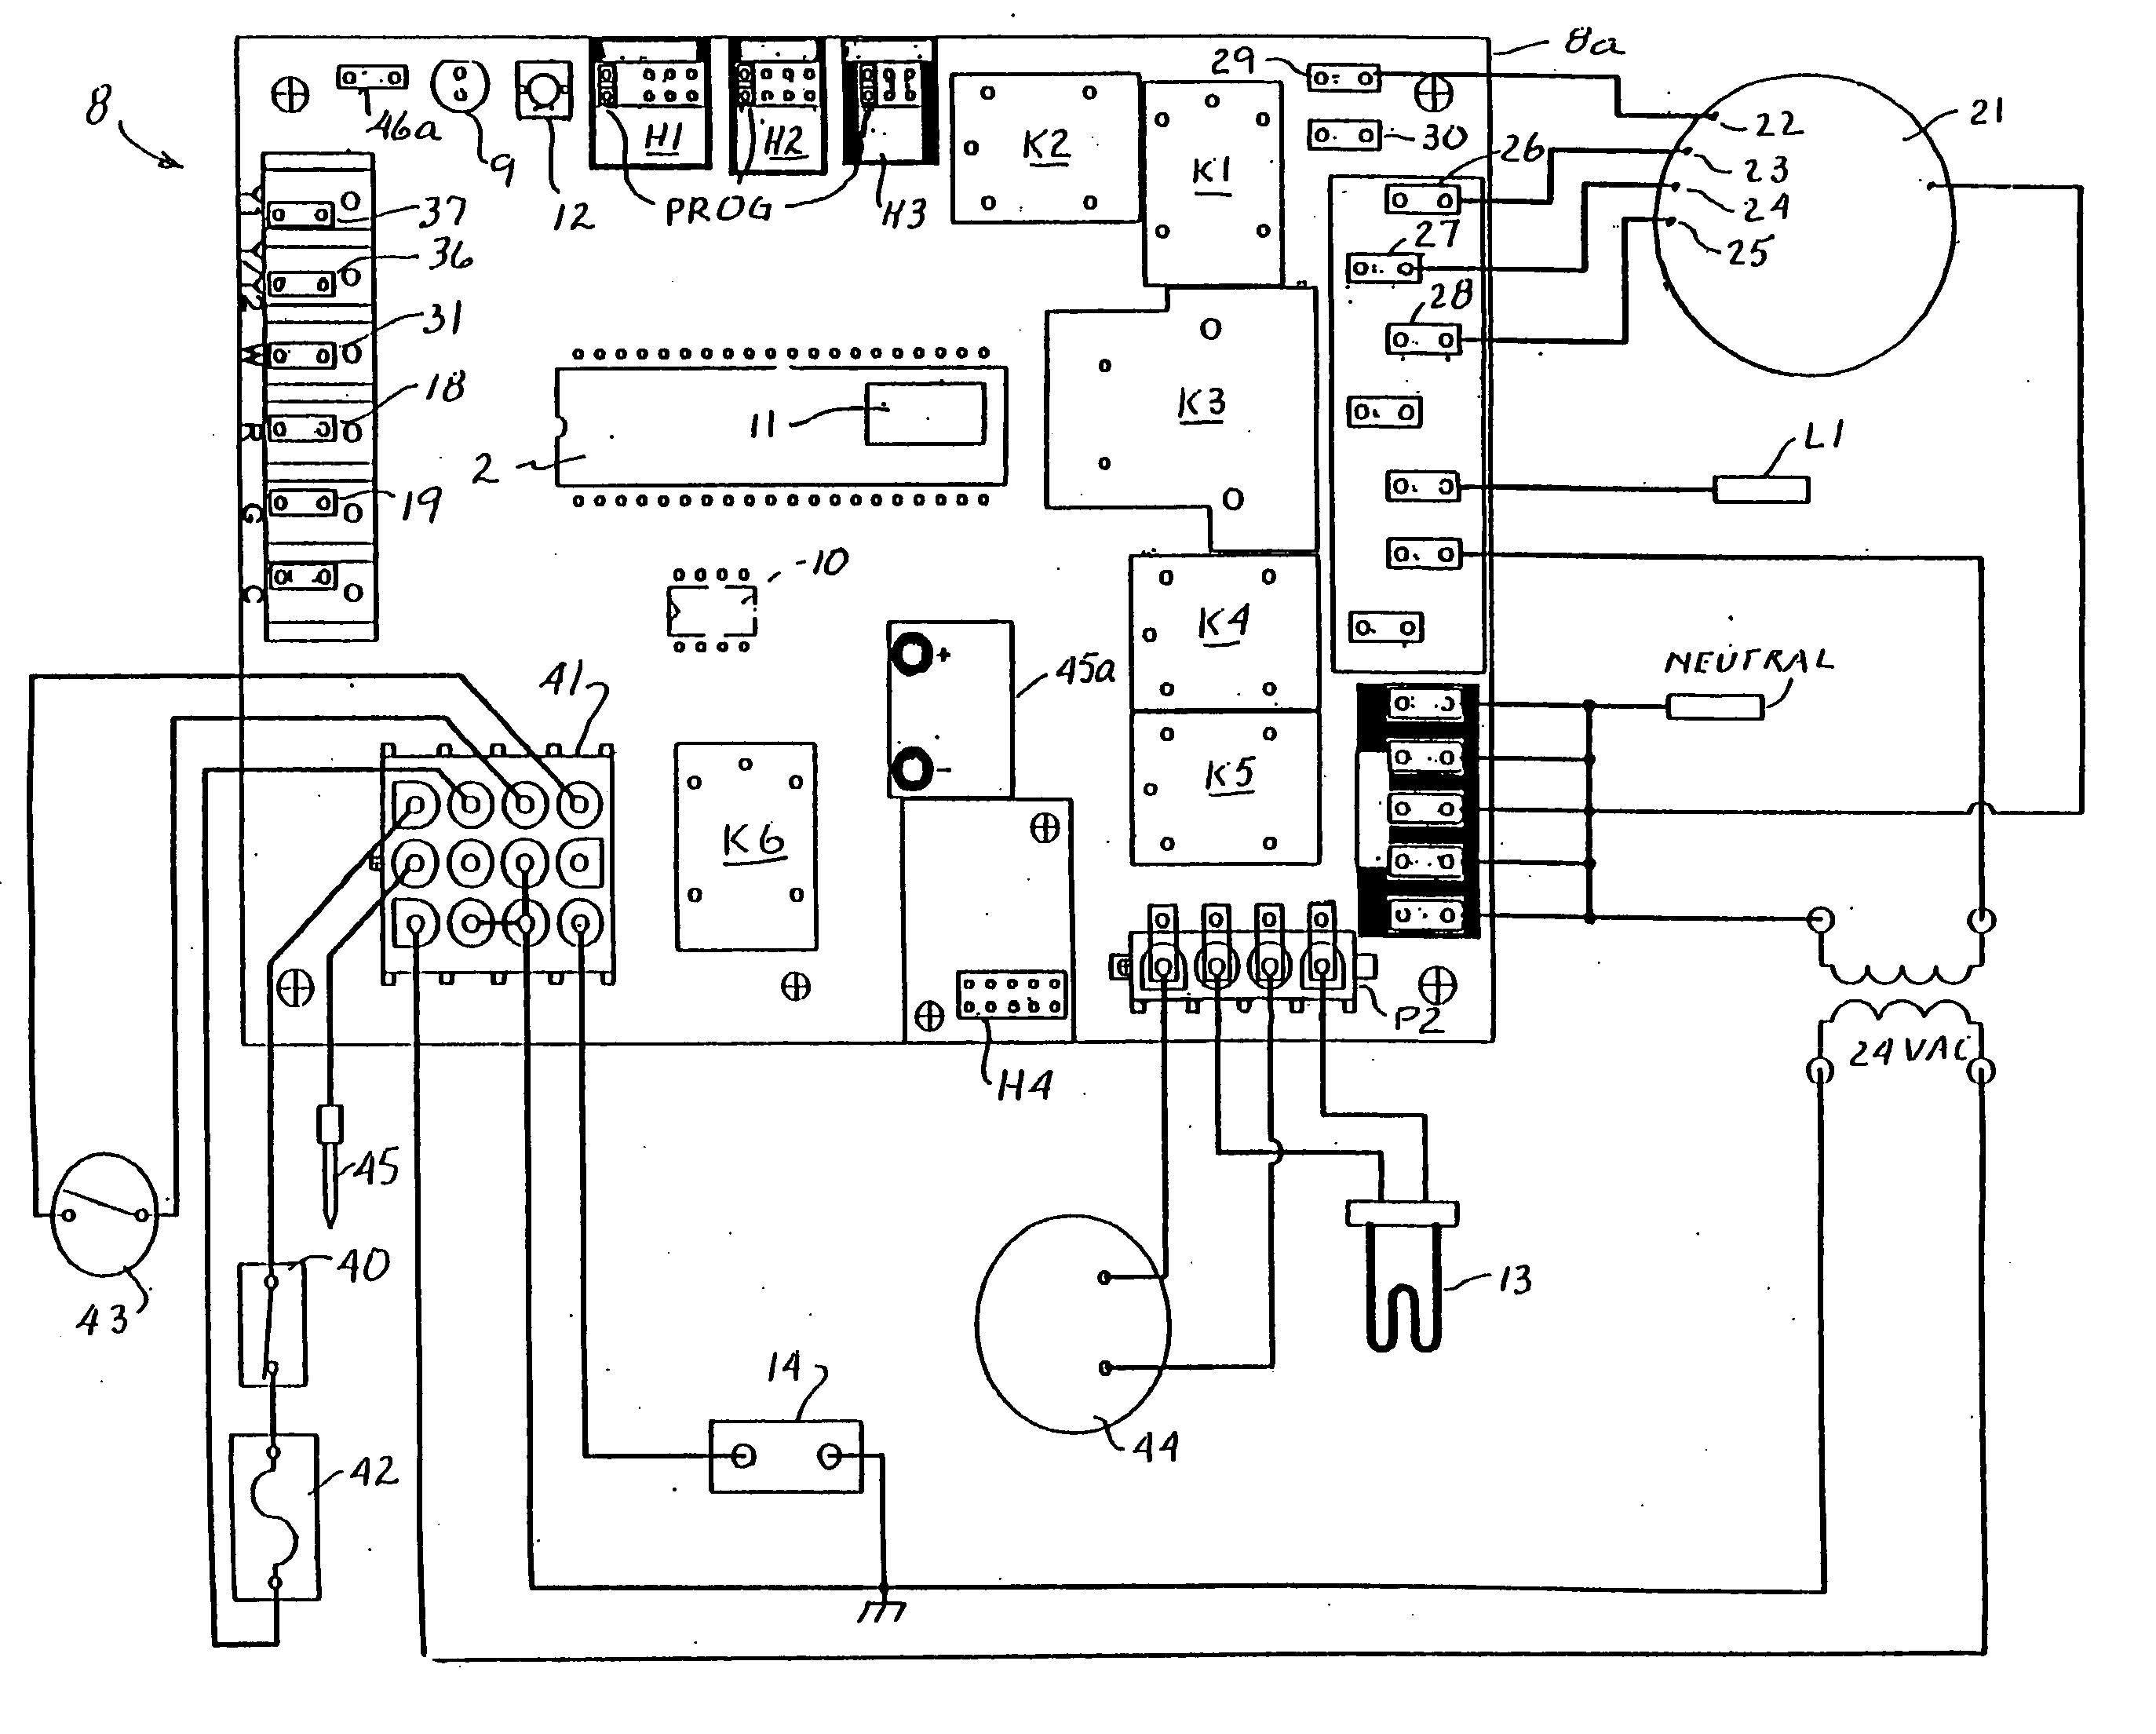 Honeywell Wiring Diagrams Wiring Harness Wiring Diagram Wiring